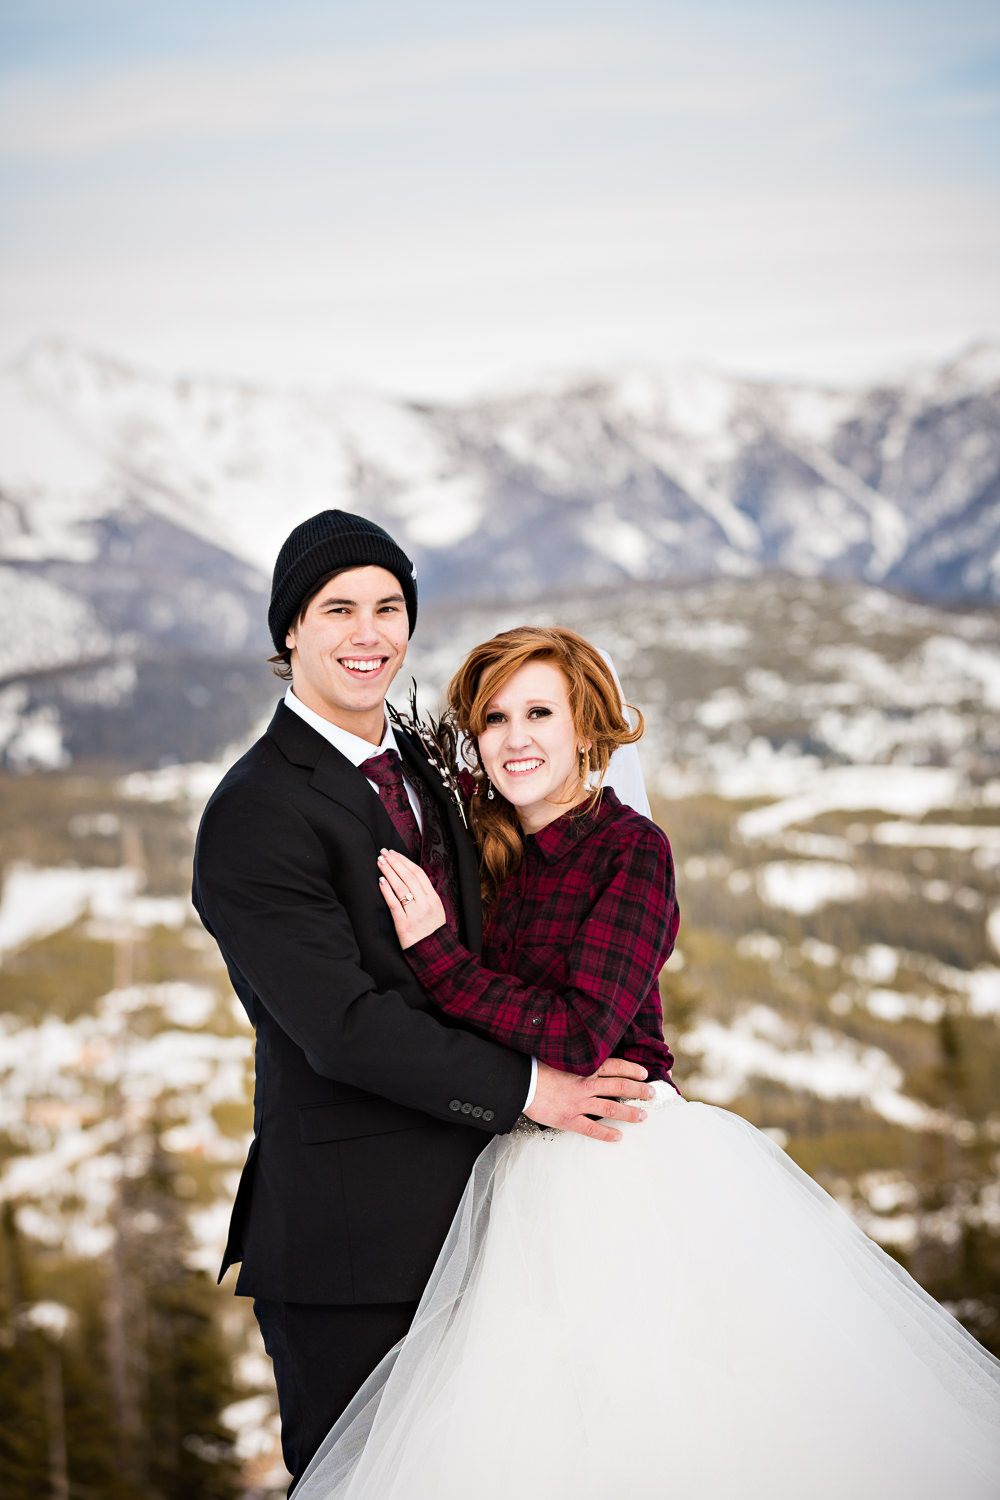 big-sky-montana-winter-wedding-breanna-formals-groom-bride-traditional-mountains.jpg